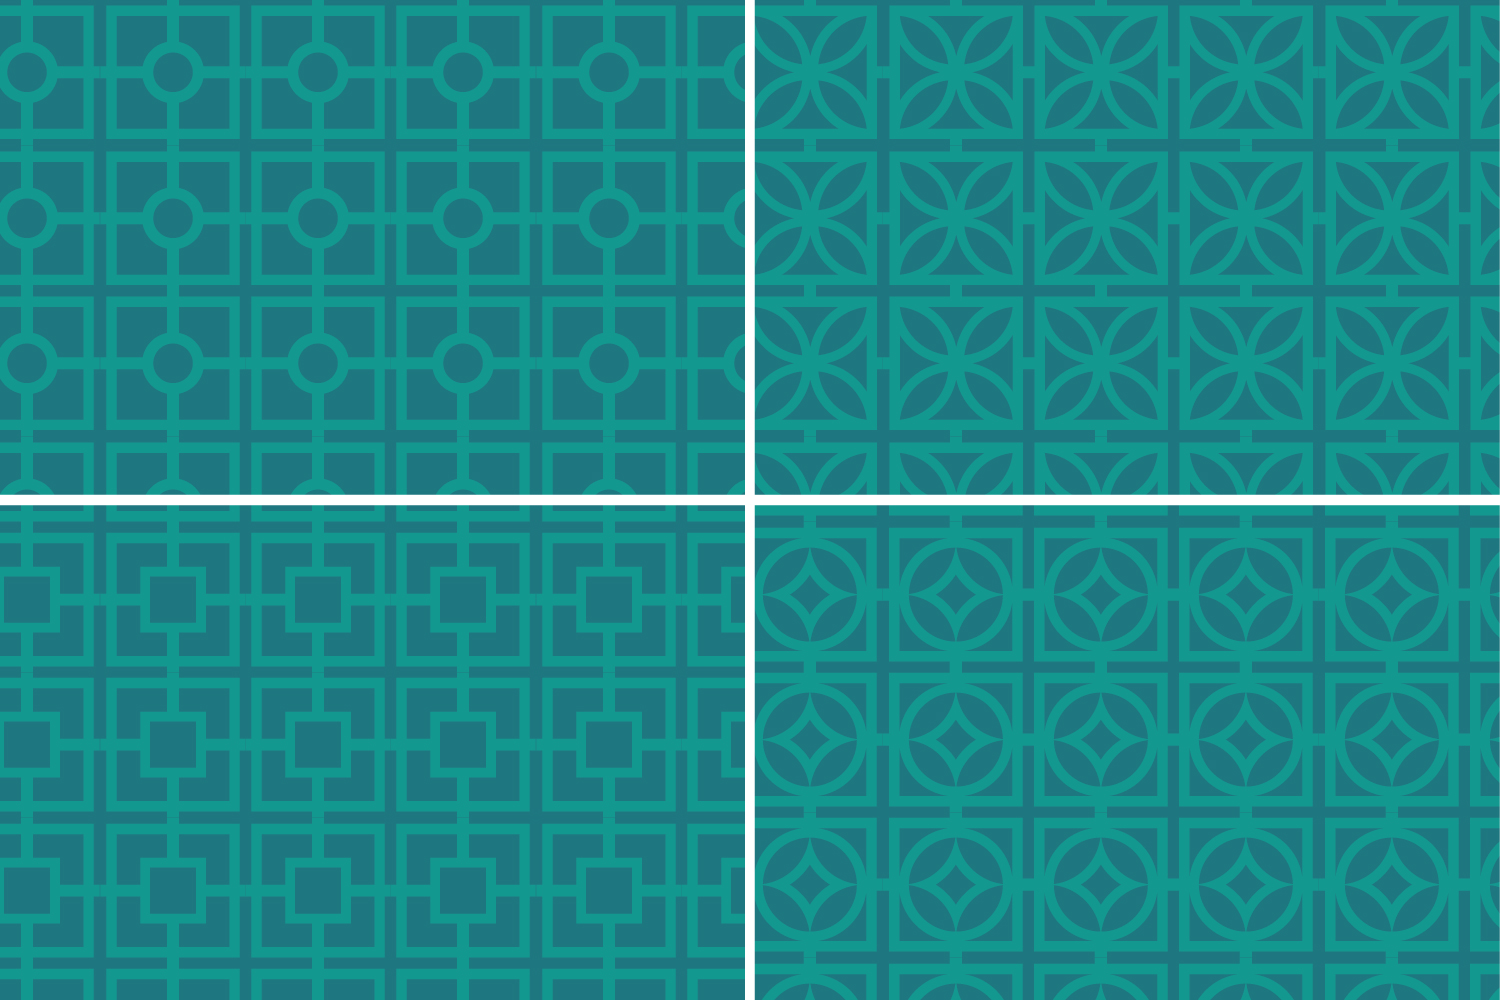 Teal Retro Breeze Block Patterns example image 5